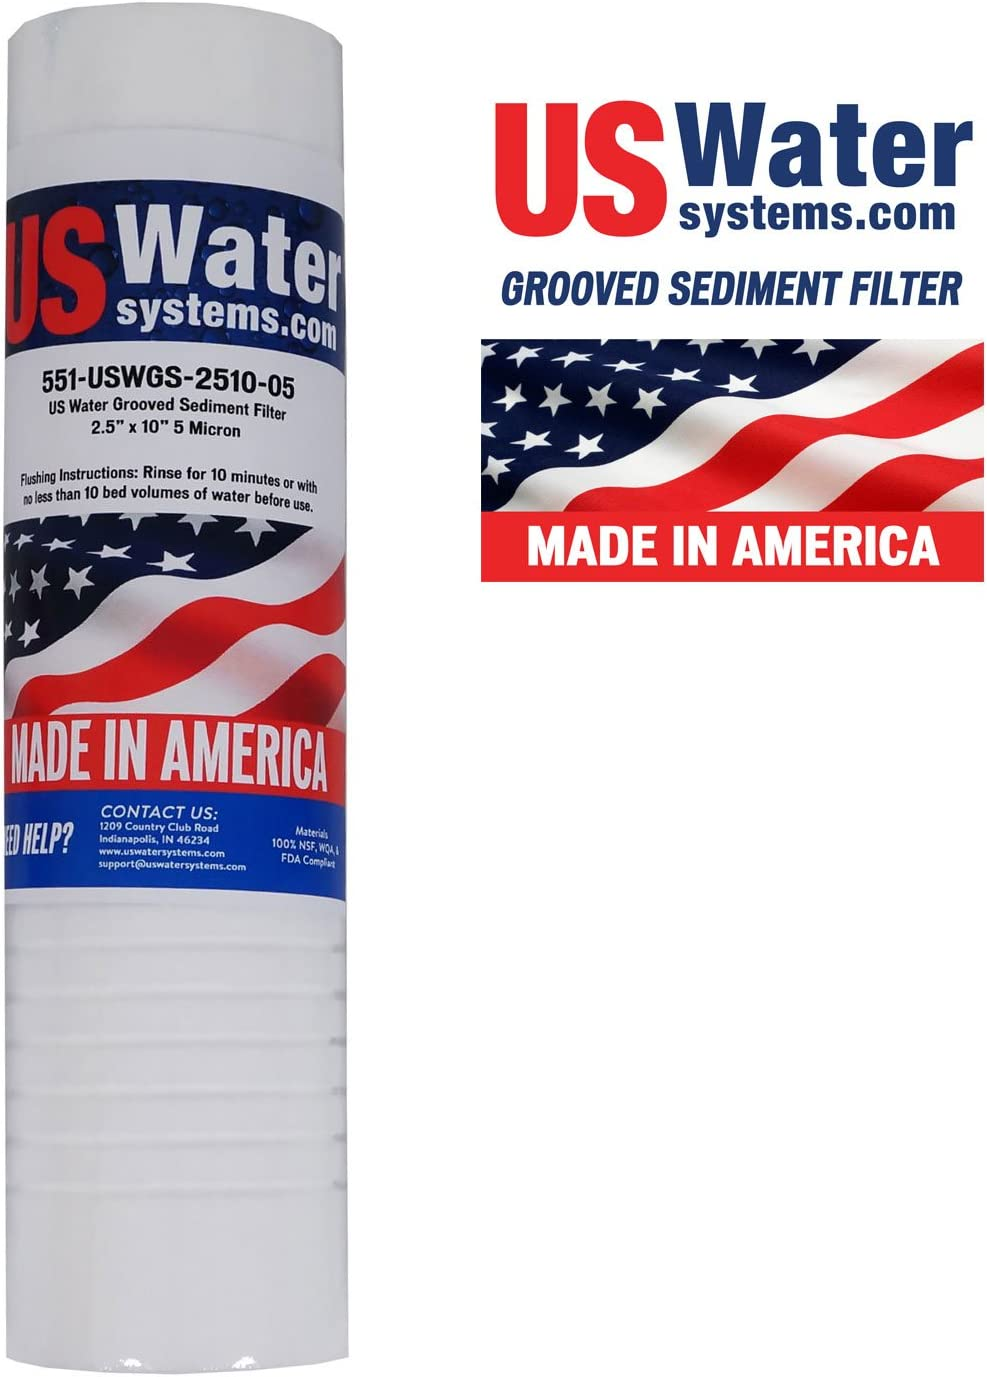 "US Water Grooved Sediment Depth Filter 2.5"" x 10"" 5 Micron 